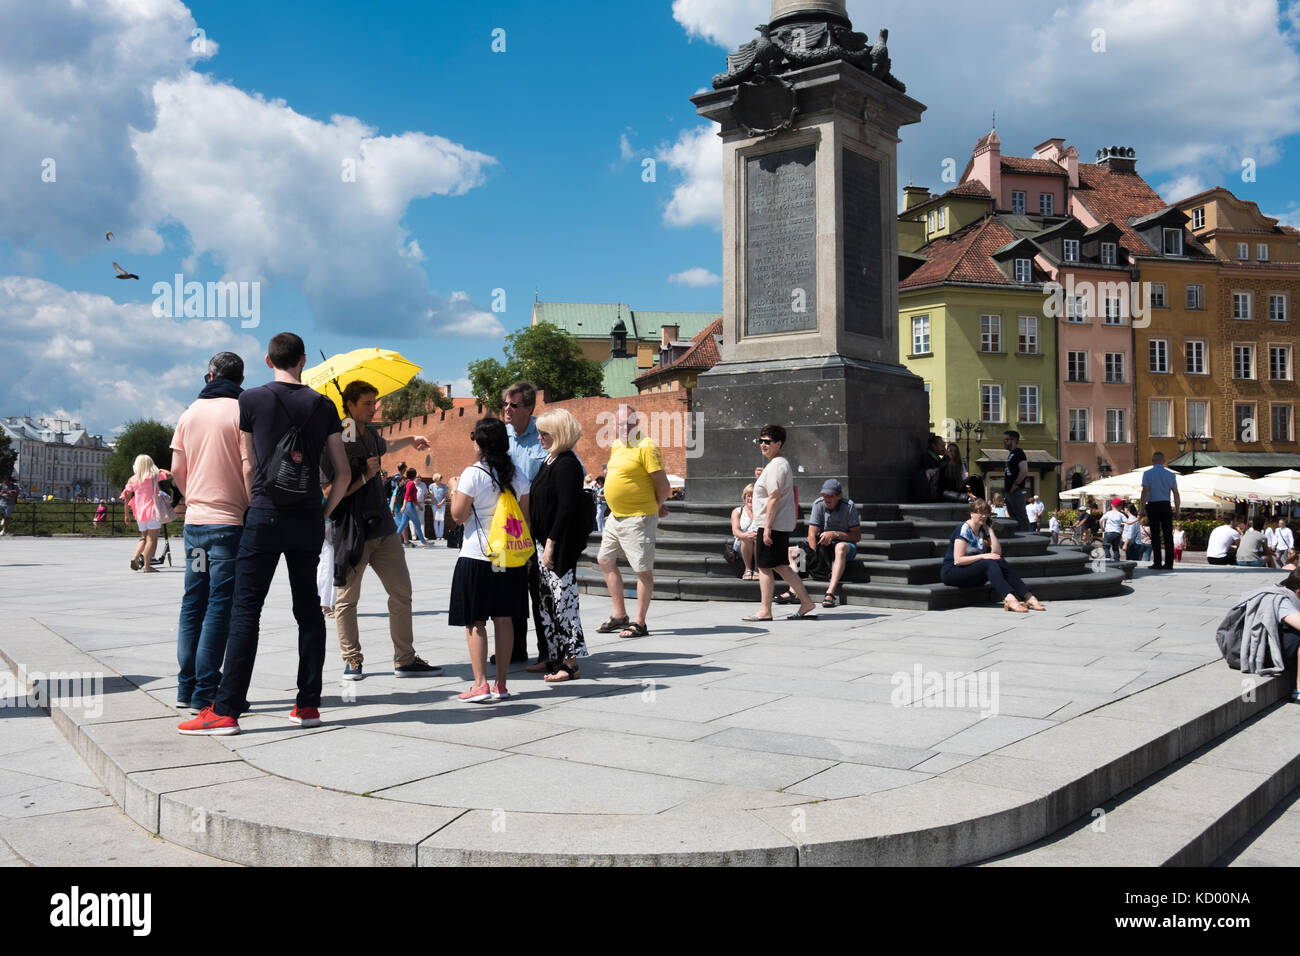 Tourists and tour guide with yellow umbrella, in front of the Sigismund III Vasa Column and colourful houses in - Stock Image